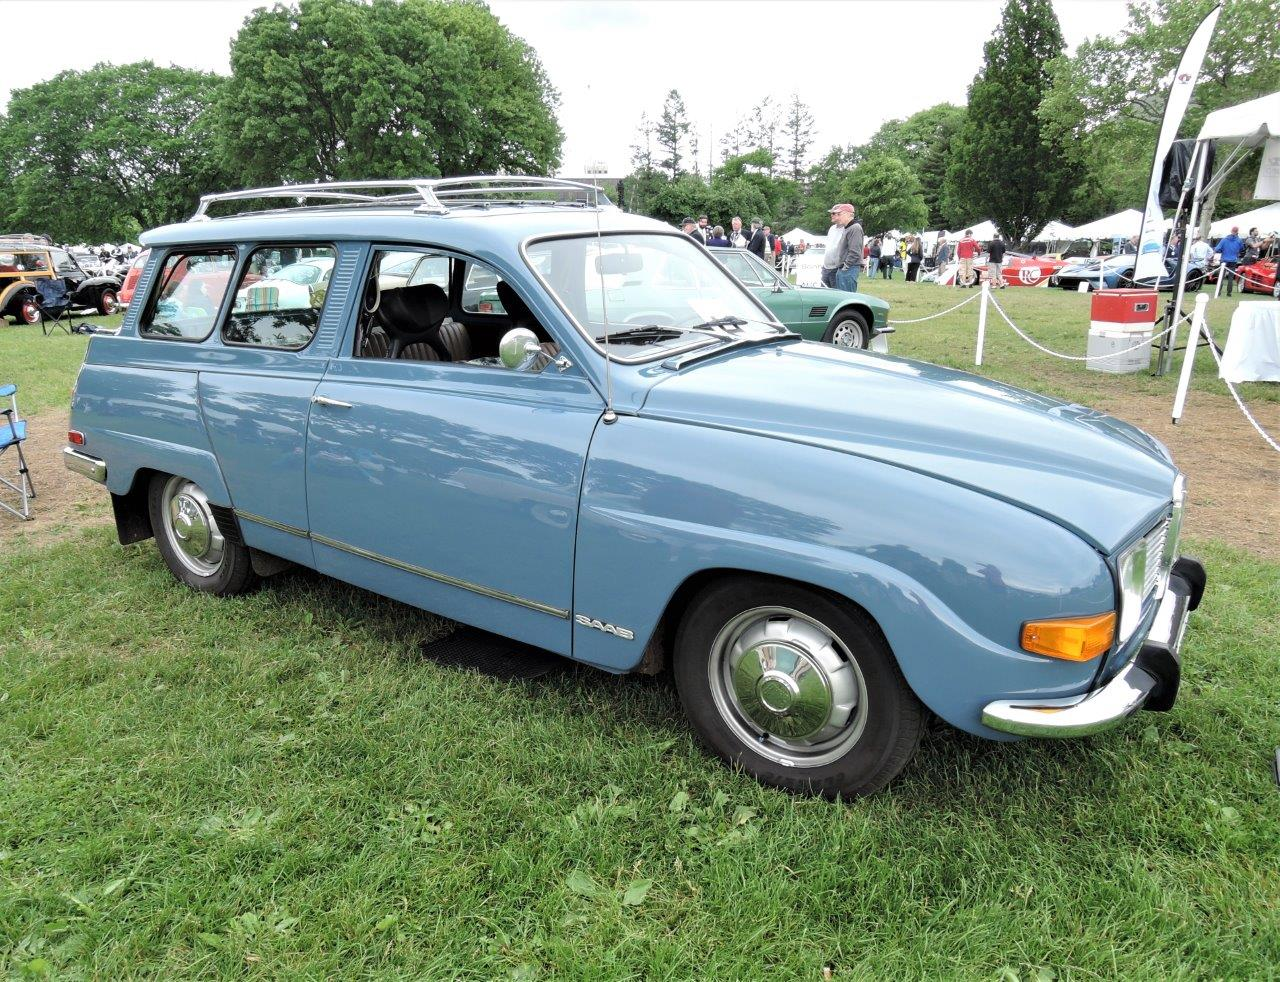 blue 1972 SAAB 95 Wagon - 2018 Greenwich Concours International